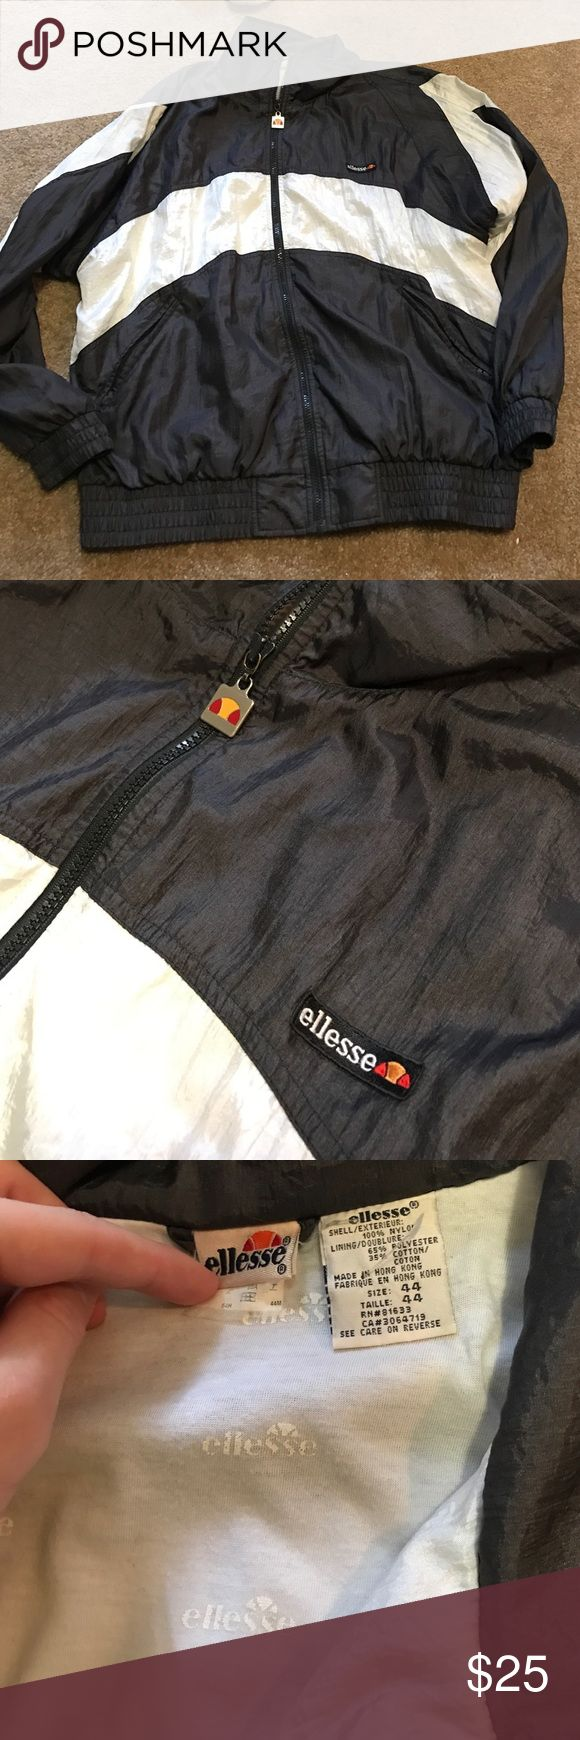 Vintage ellesse windbreaker jacket rare old This is a vintage ellesse windbreaker and is really rare. They don't make these anymore and this is probably from the 1990s. This price is unbelievable considering the age and great condition of this piece. It is a size 44 which is usually like a XL but fits more like a Large. Won't last long Ellesse Jackets & Coats Windbreakers